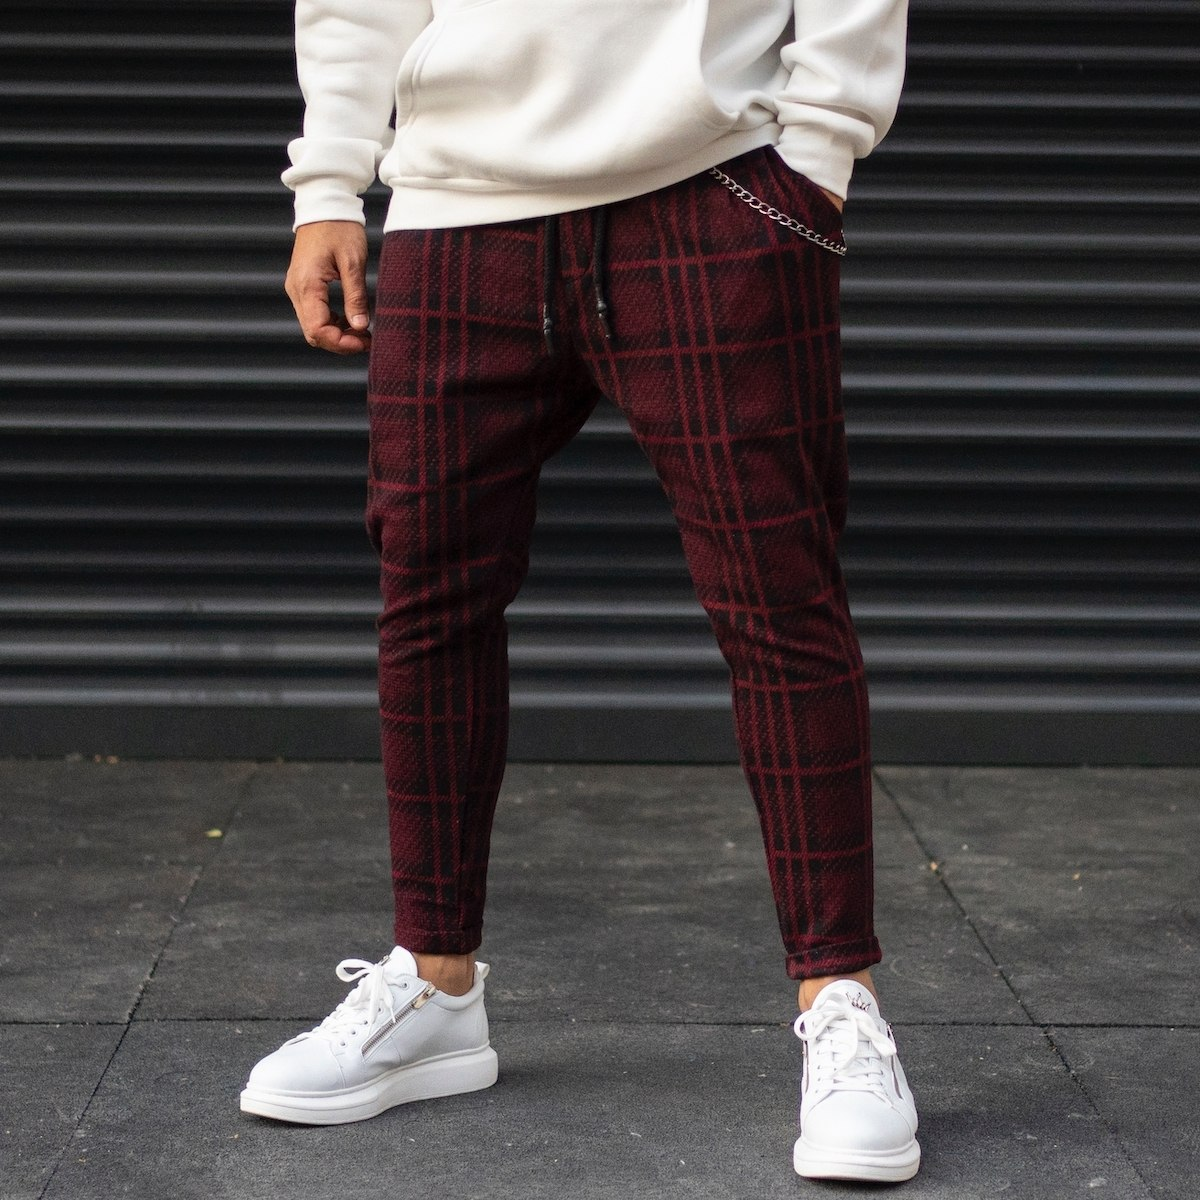 Men's Plaid Cachet Sweatpants With Chain Detail In Claret Red